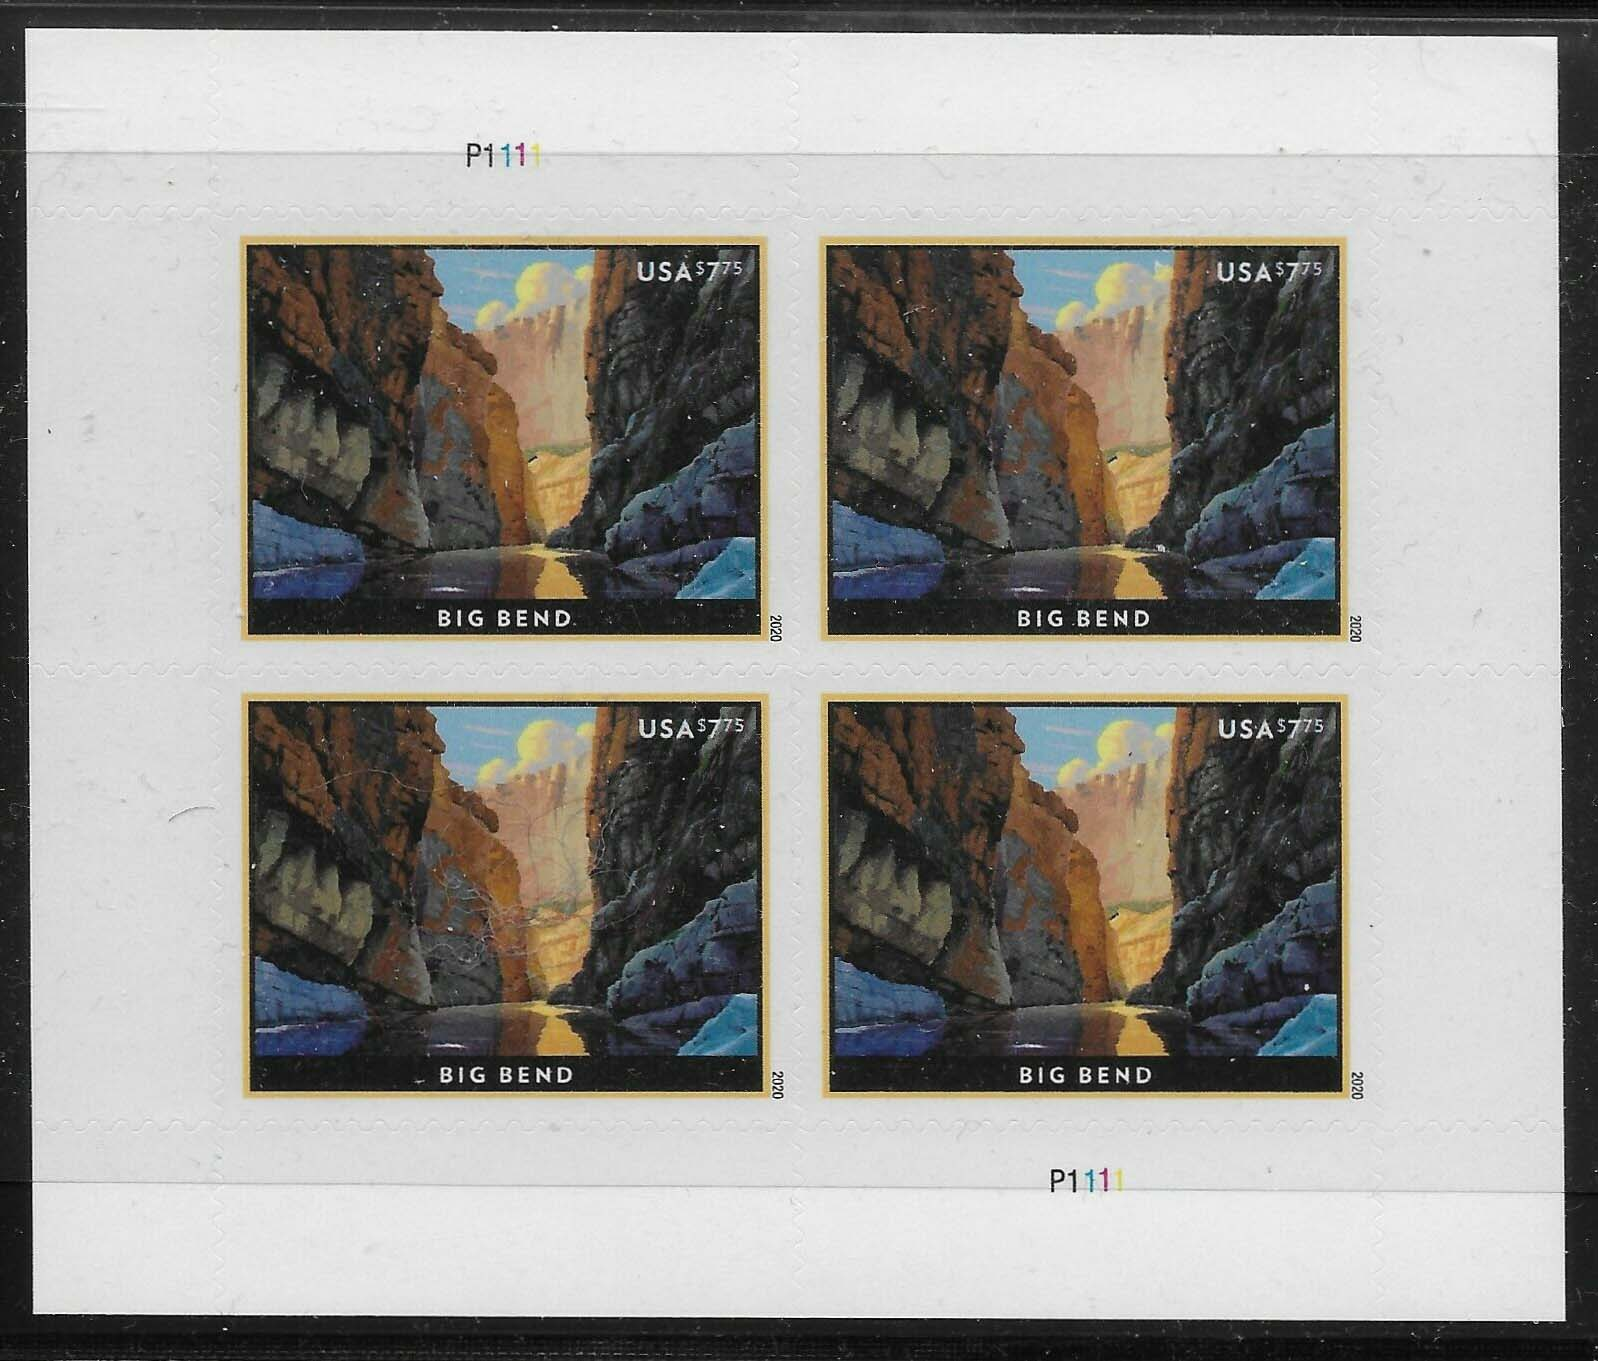 Scott #5429, Priority Mail, $7.75 Sheet of 4 stamps, Big Bend.